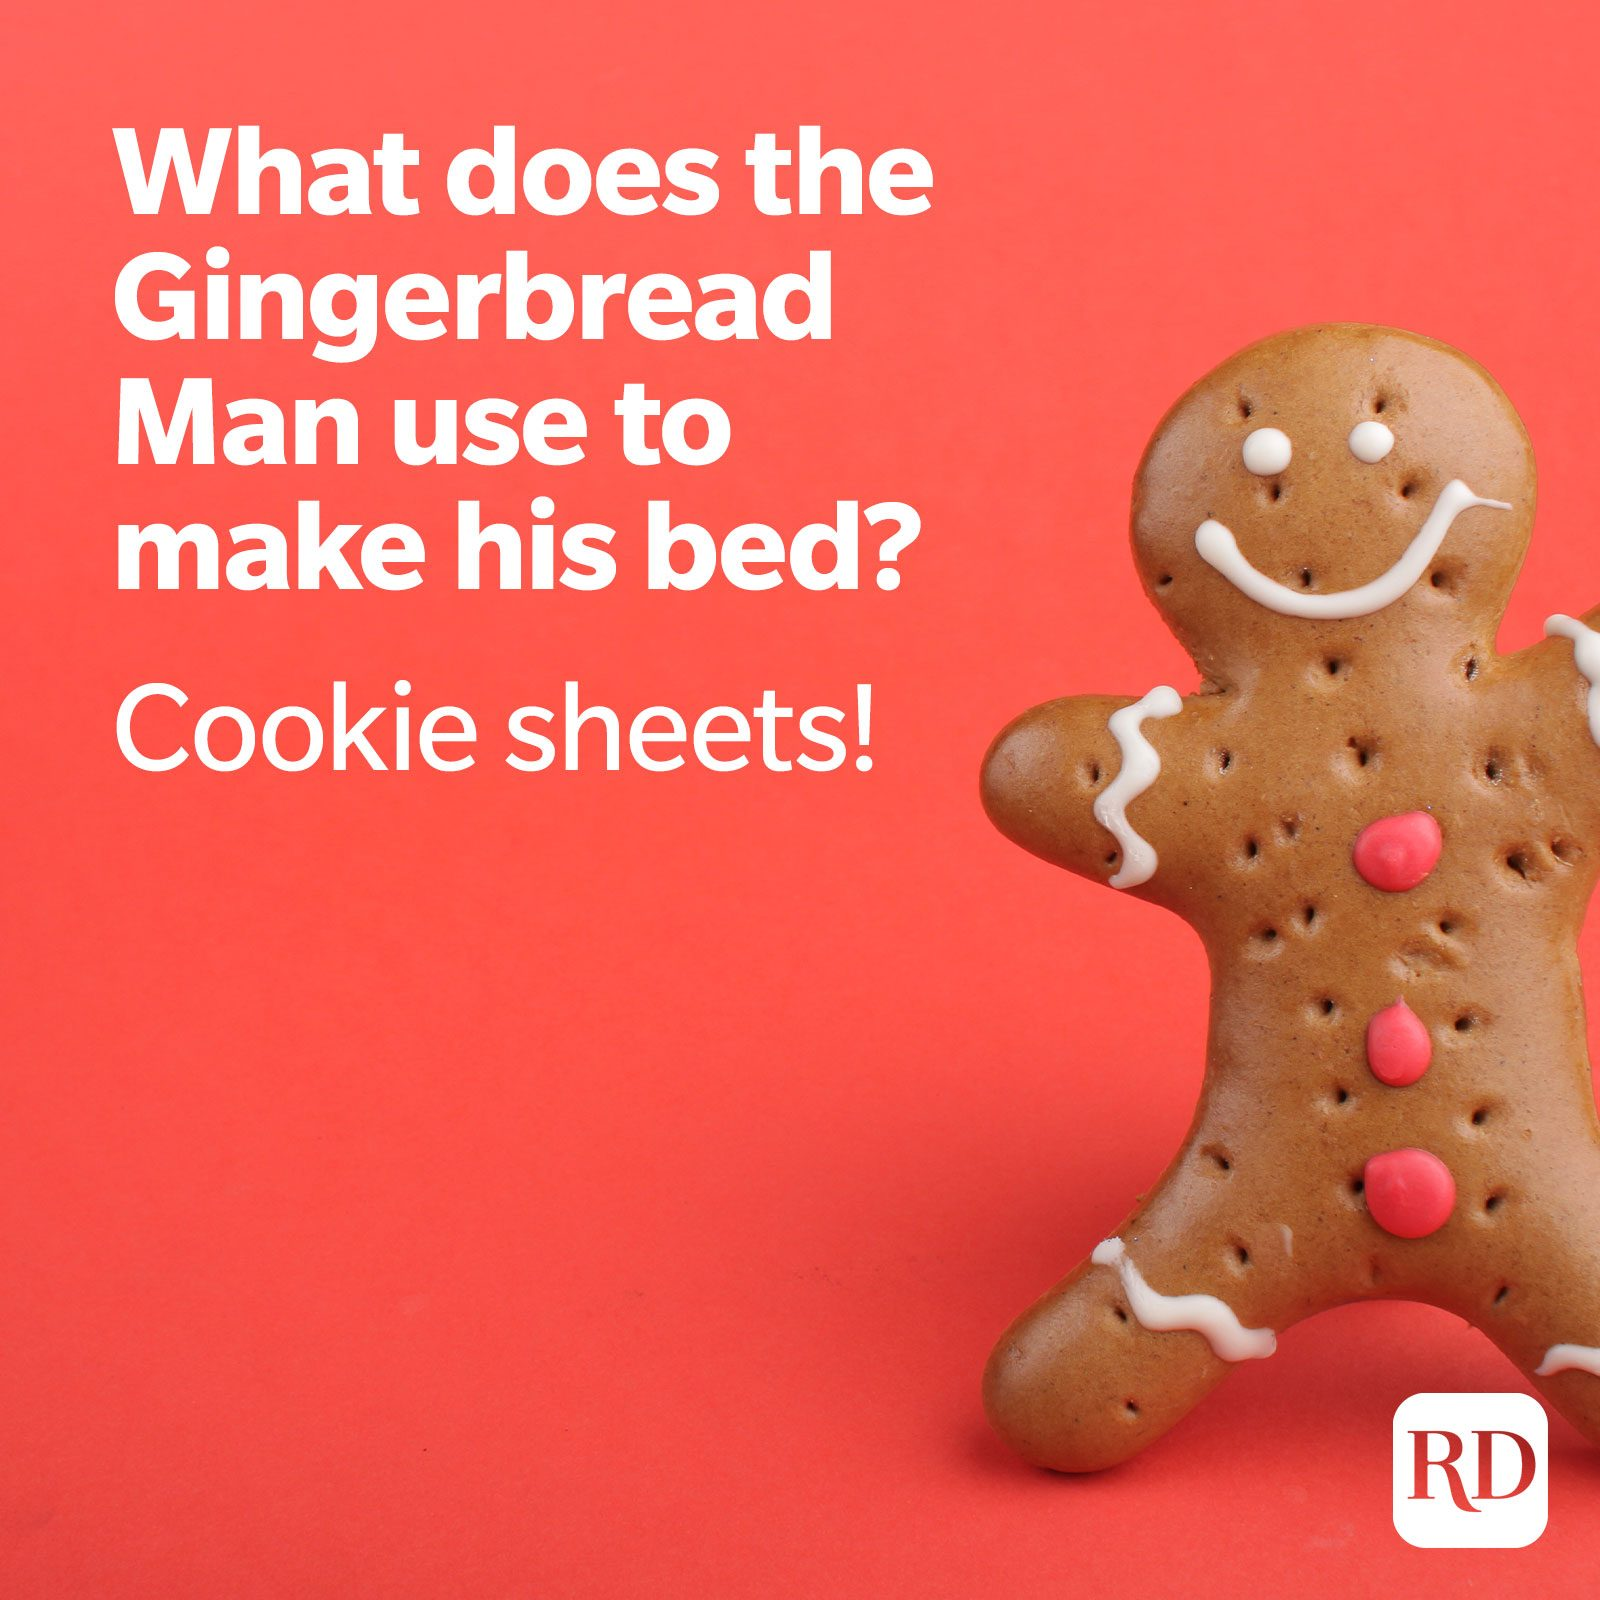 2. What does the Gingerbread Man use to make his bed? Cookie sheets!